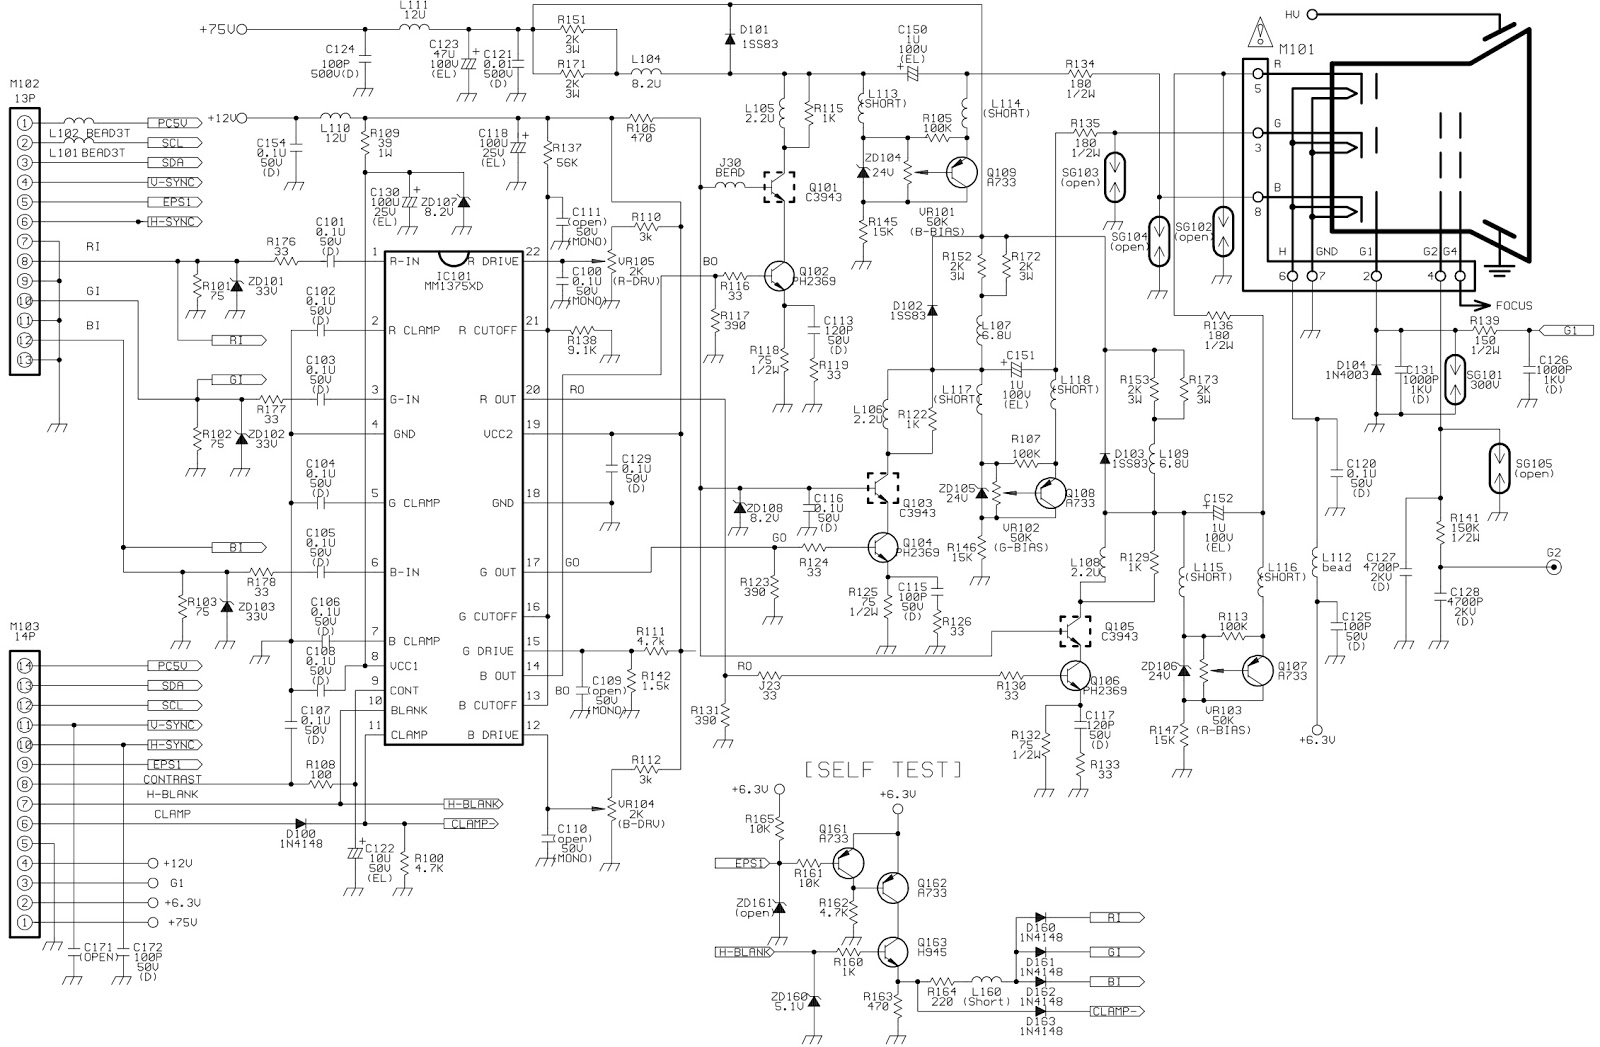 Crt Monitor Schematic Diagram Pictures to Pin on Pinterest